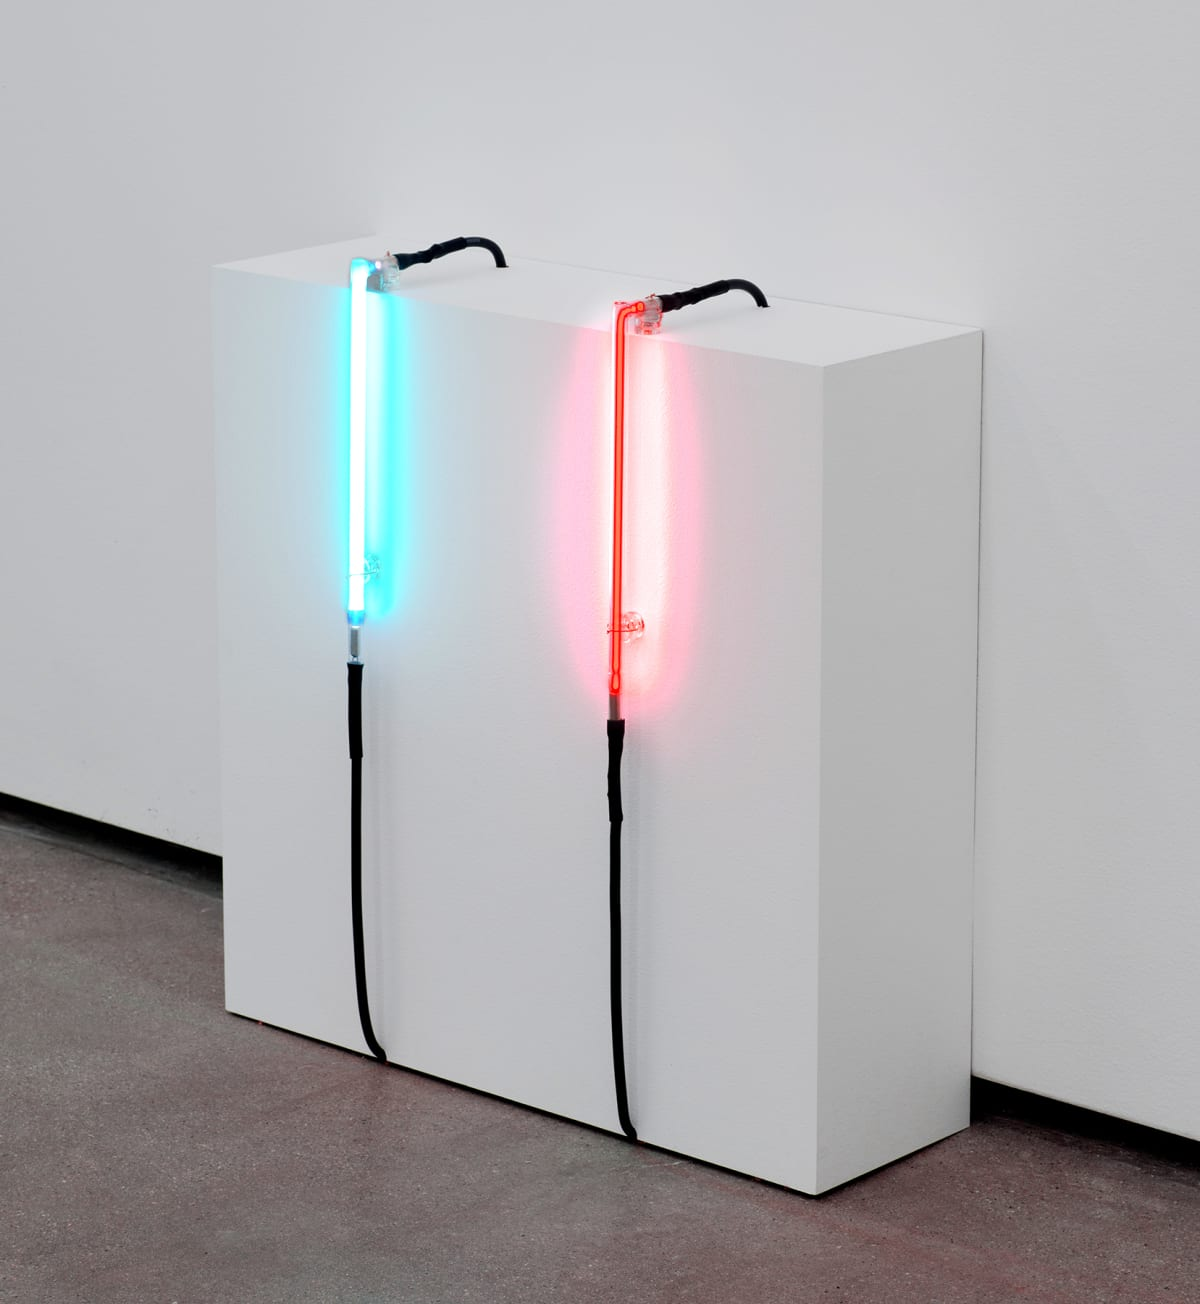 Robert Overby, Neon Test 2 and Neon Test 3, 1971 c.